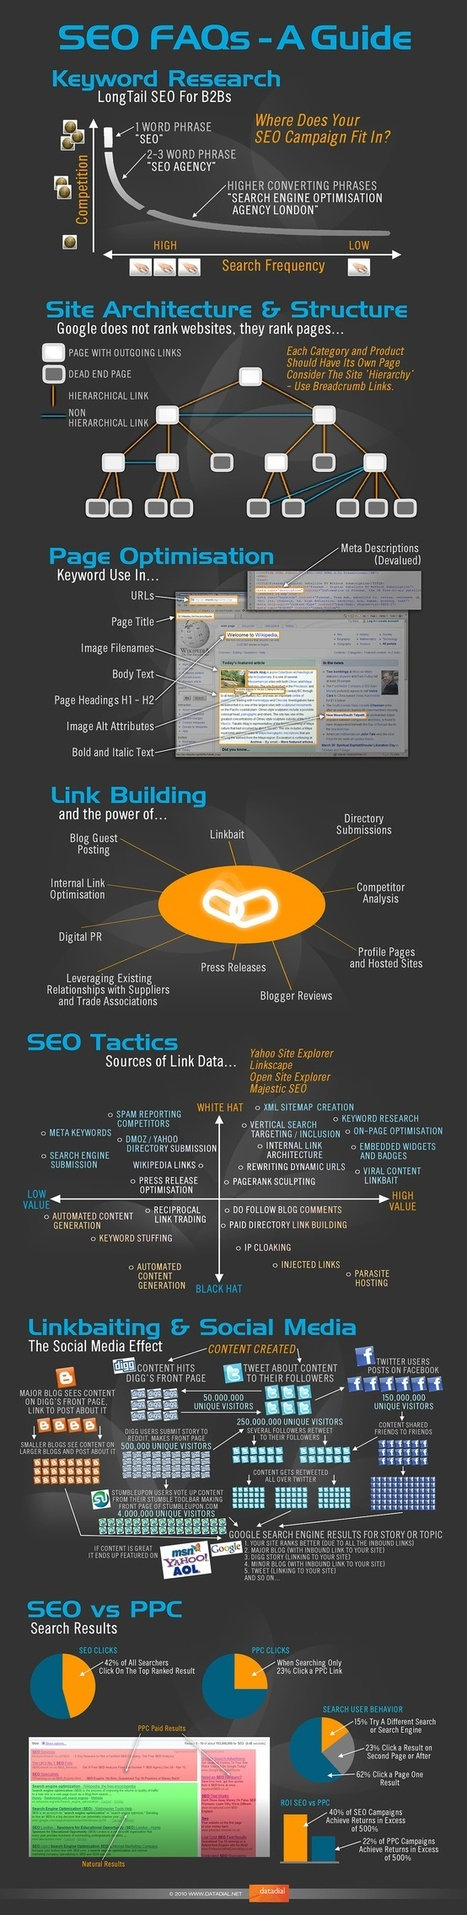 SEO FAQ's Guide | Wigisocial | mojo 3 | Scoop.it